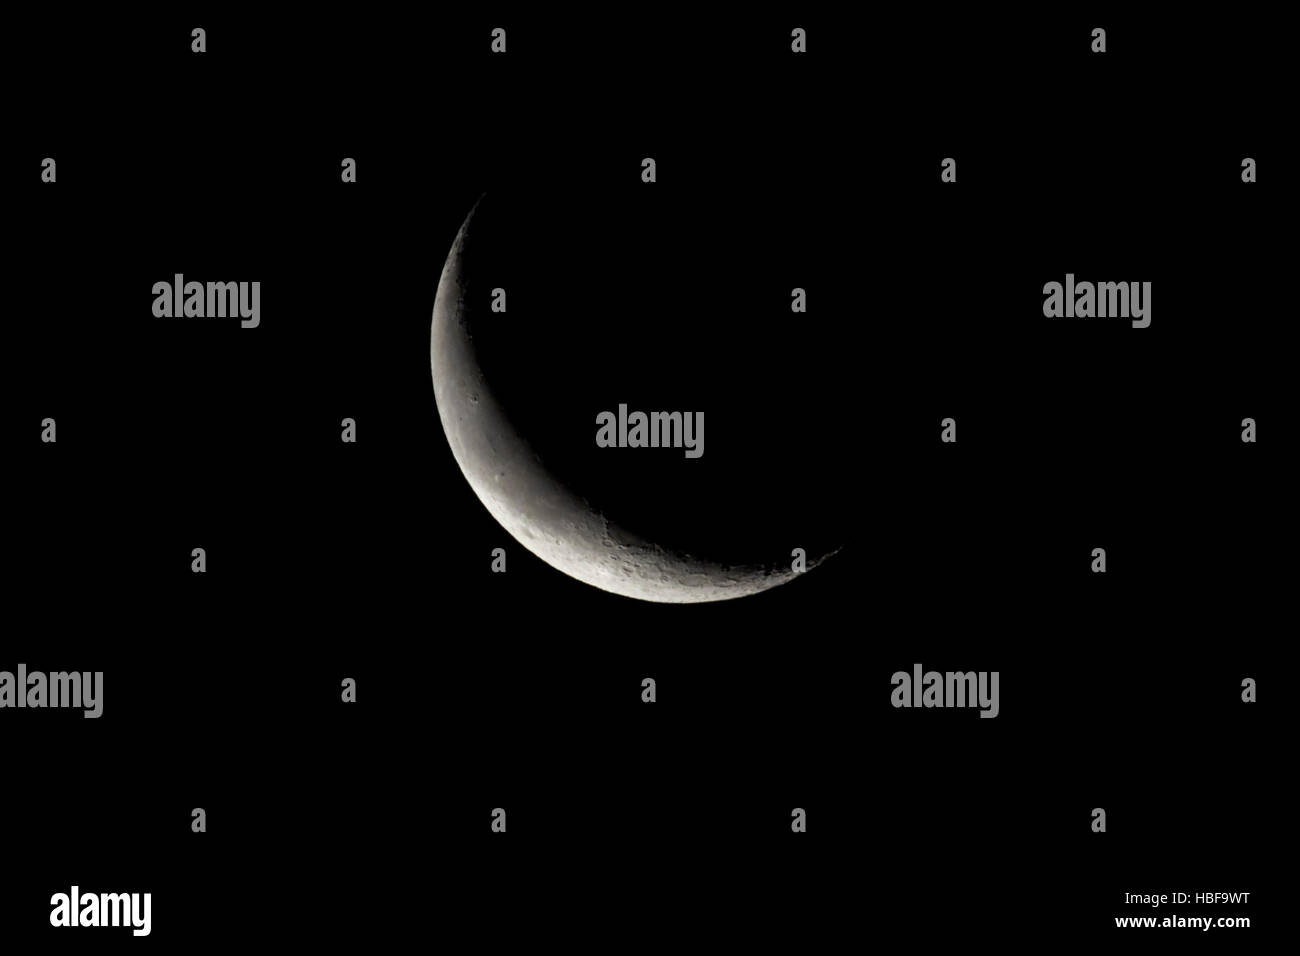 Lunar Cycle Stock Photos Images Alamy Moon Phase Diagram 3 Phases 26 Day Old Waning Crescent 14 Visible Image